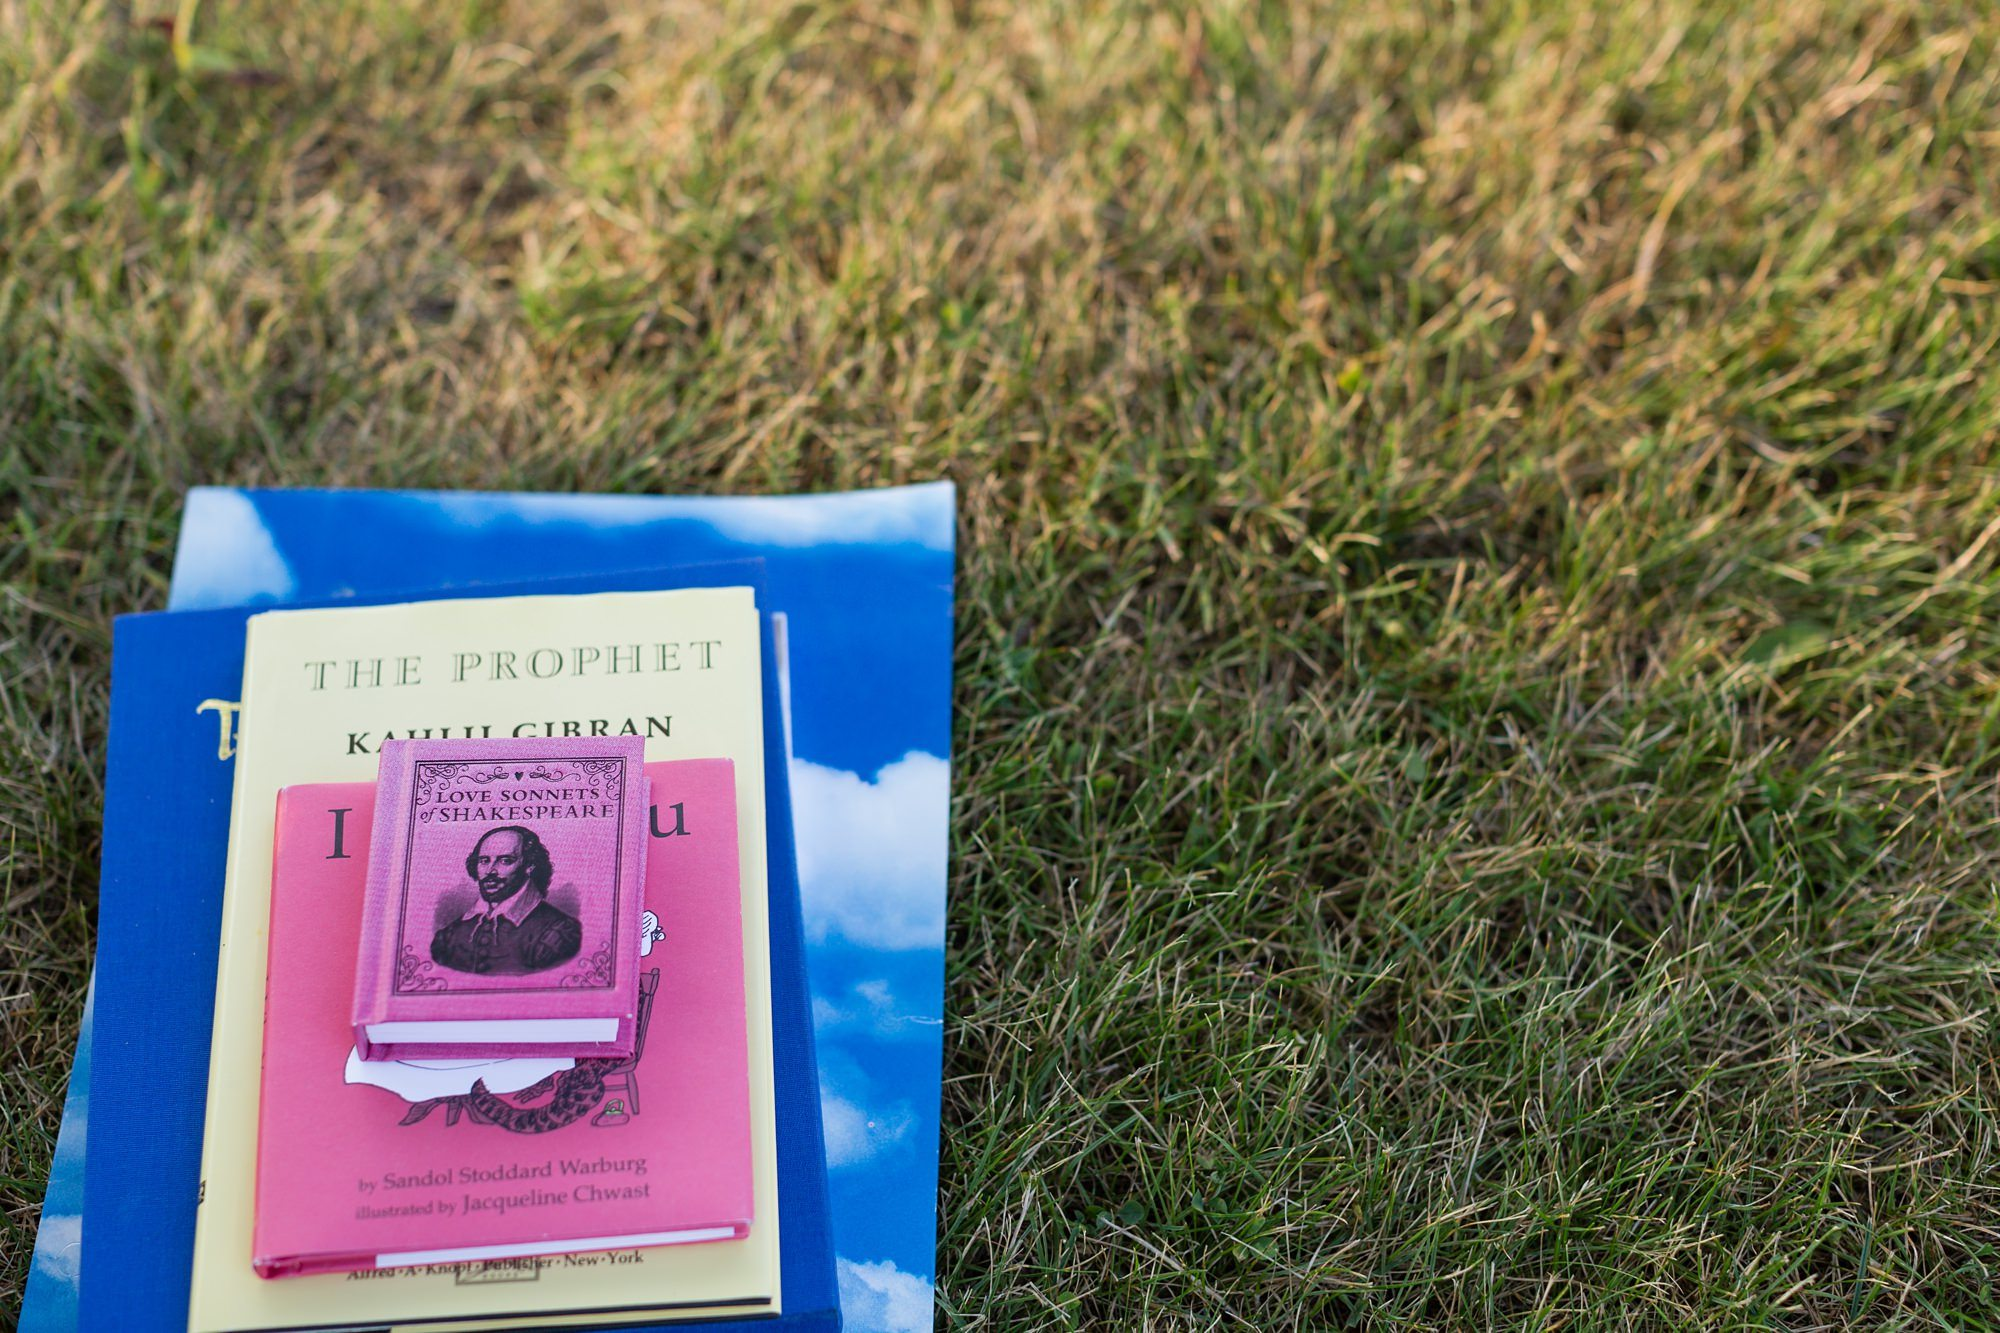 Stack of books in the grass with shakespeare